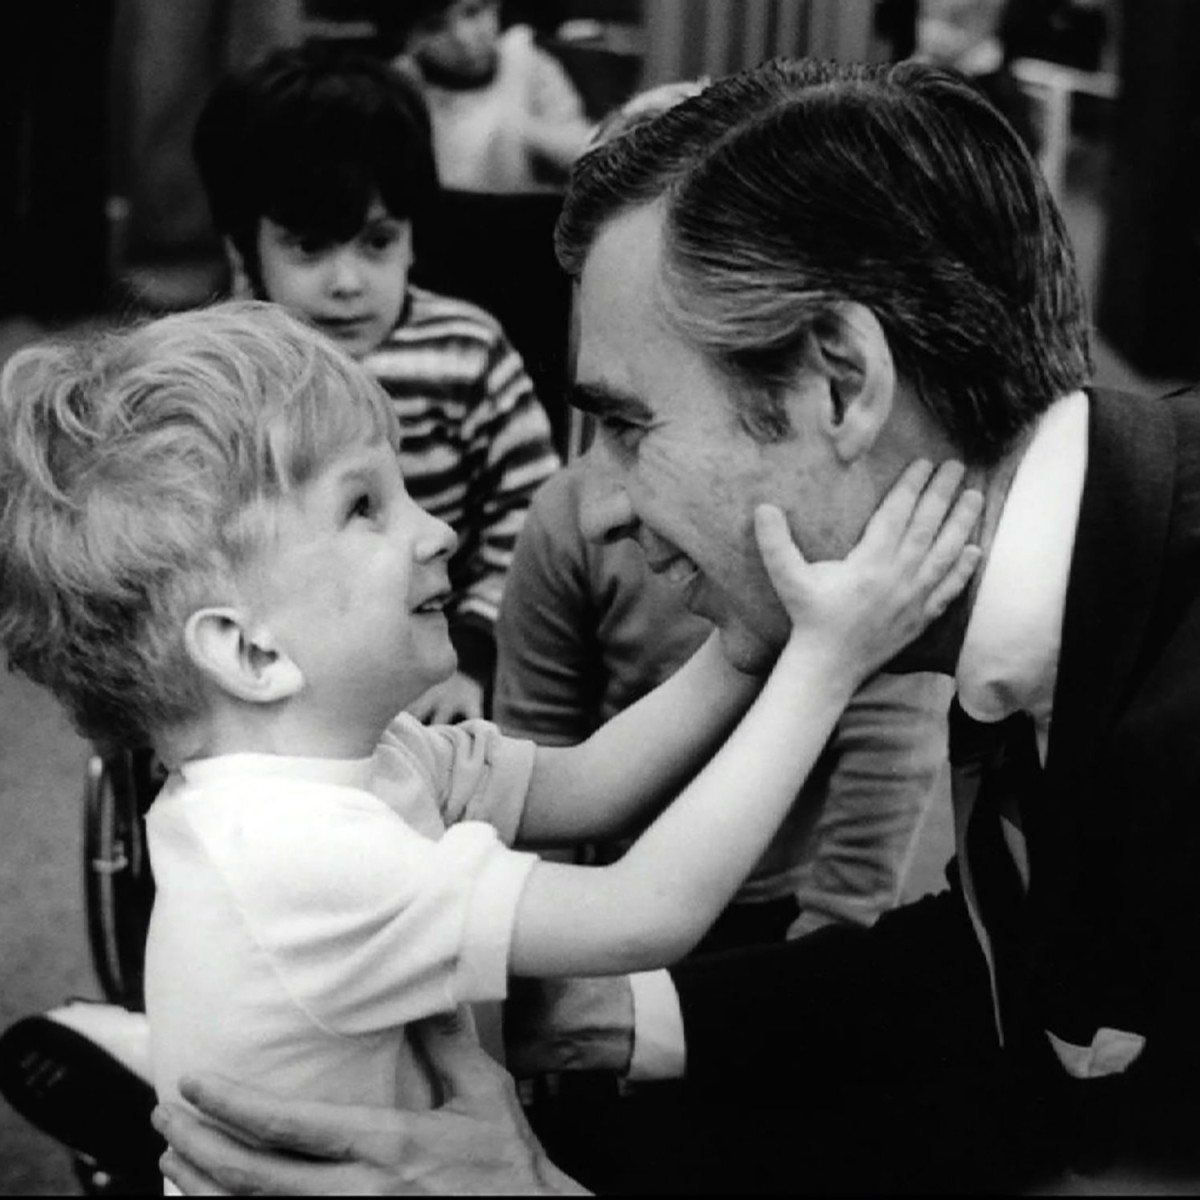 Disabled boy and Fred Rogers in Won't You Be My Neighbor?